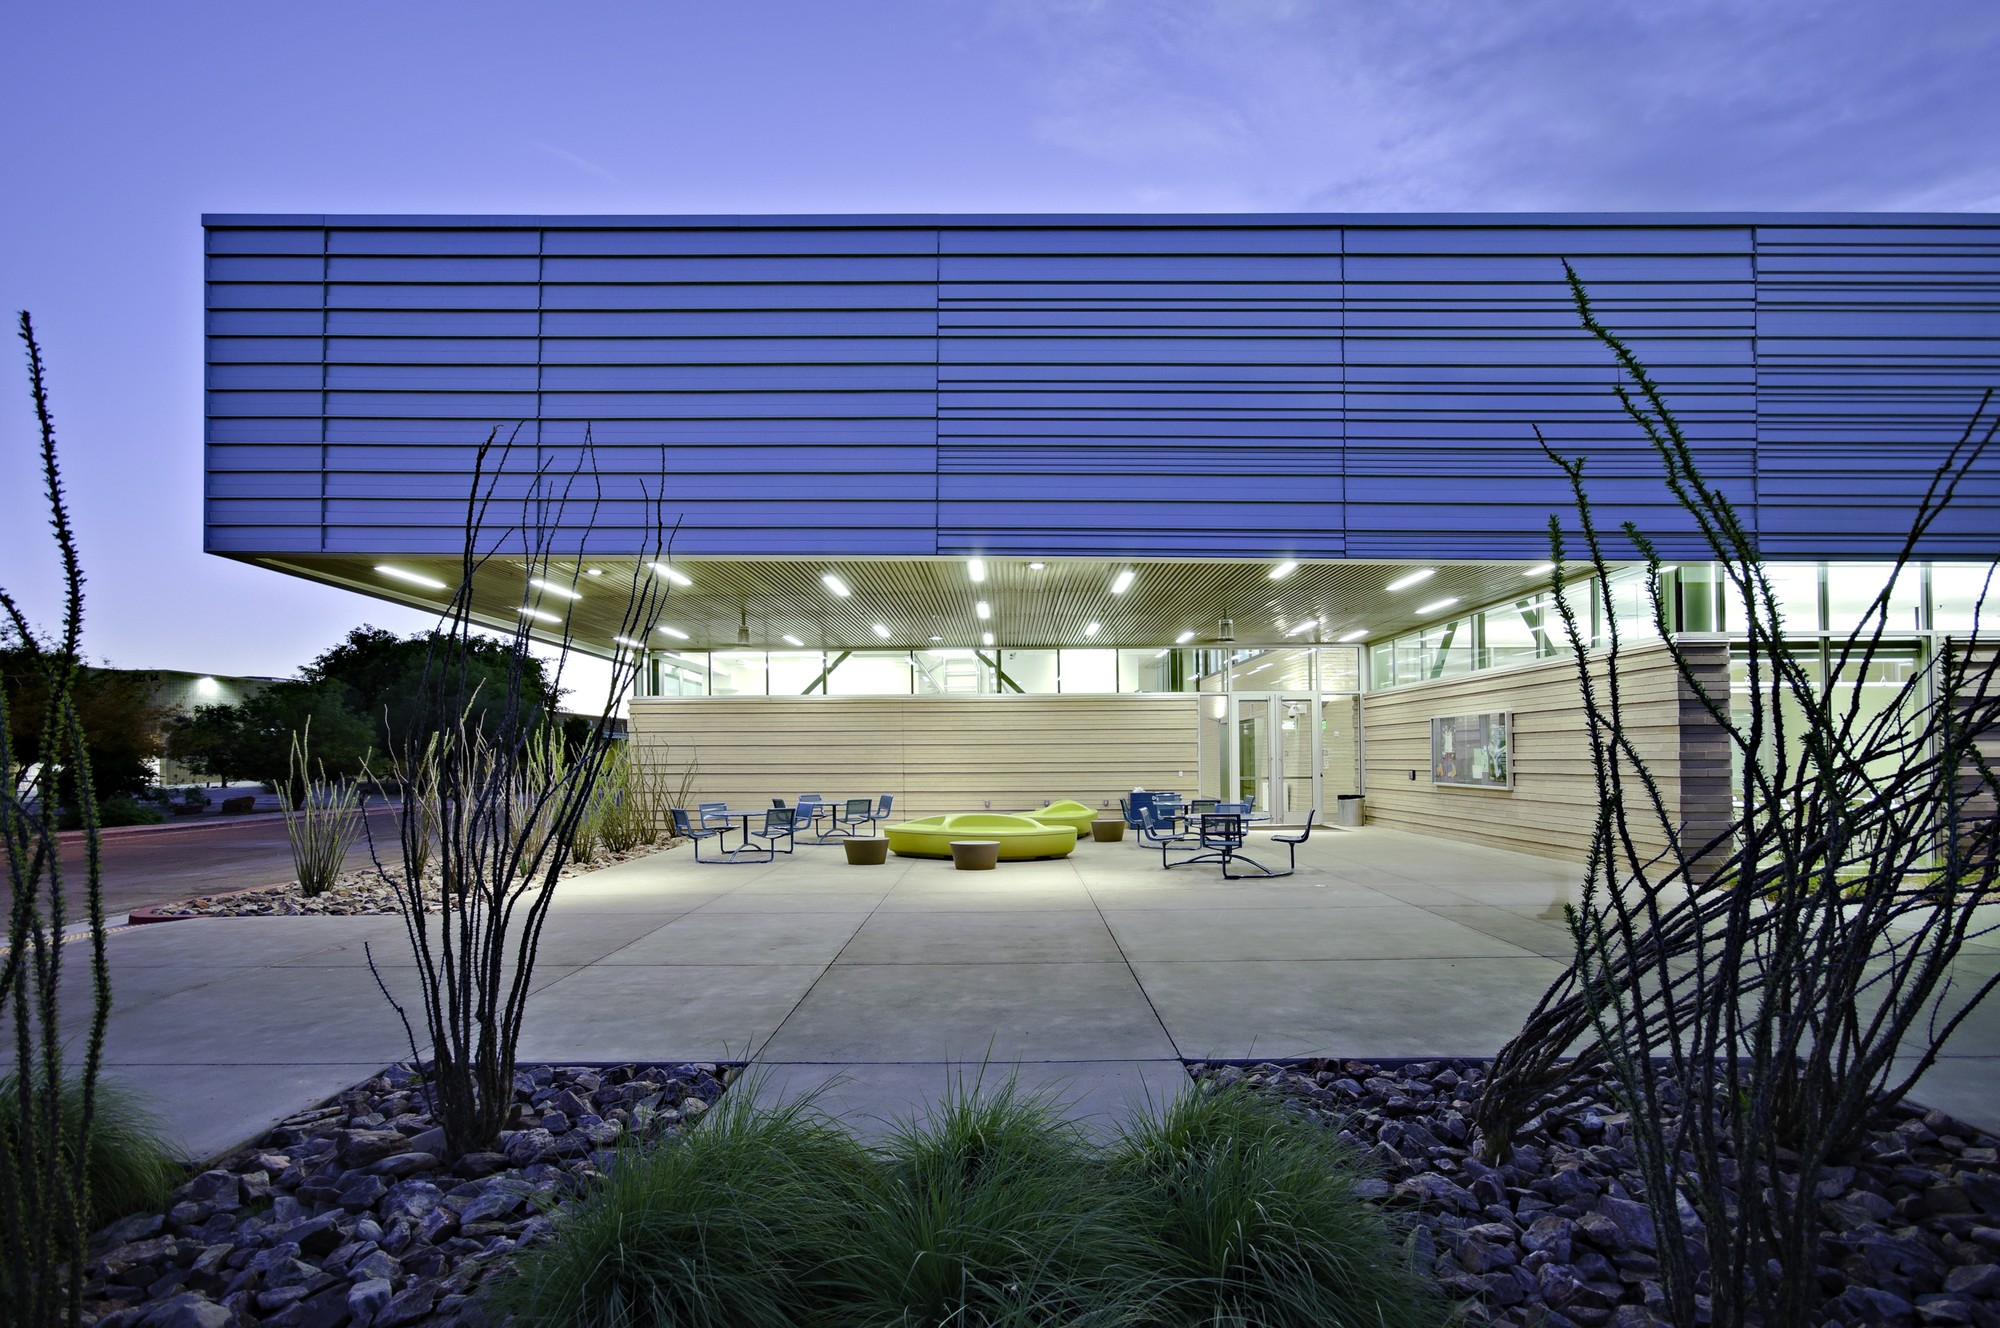 Mesa Community College Health Wellness Building; Mesa, Arizona / SmithGroupJJR © Liam Frederick